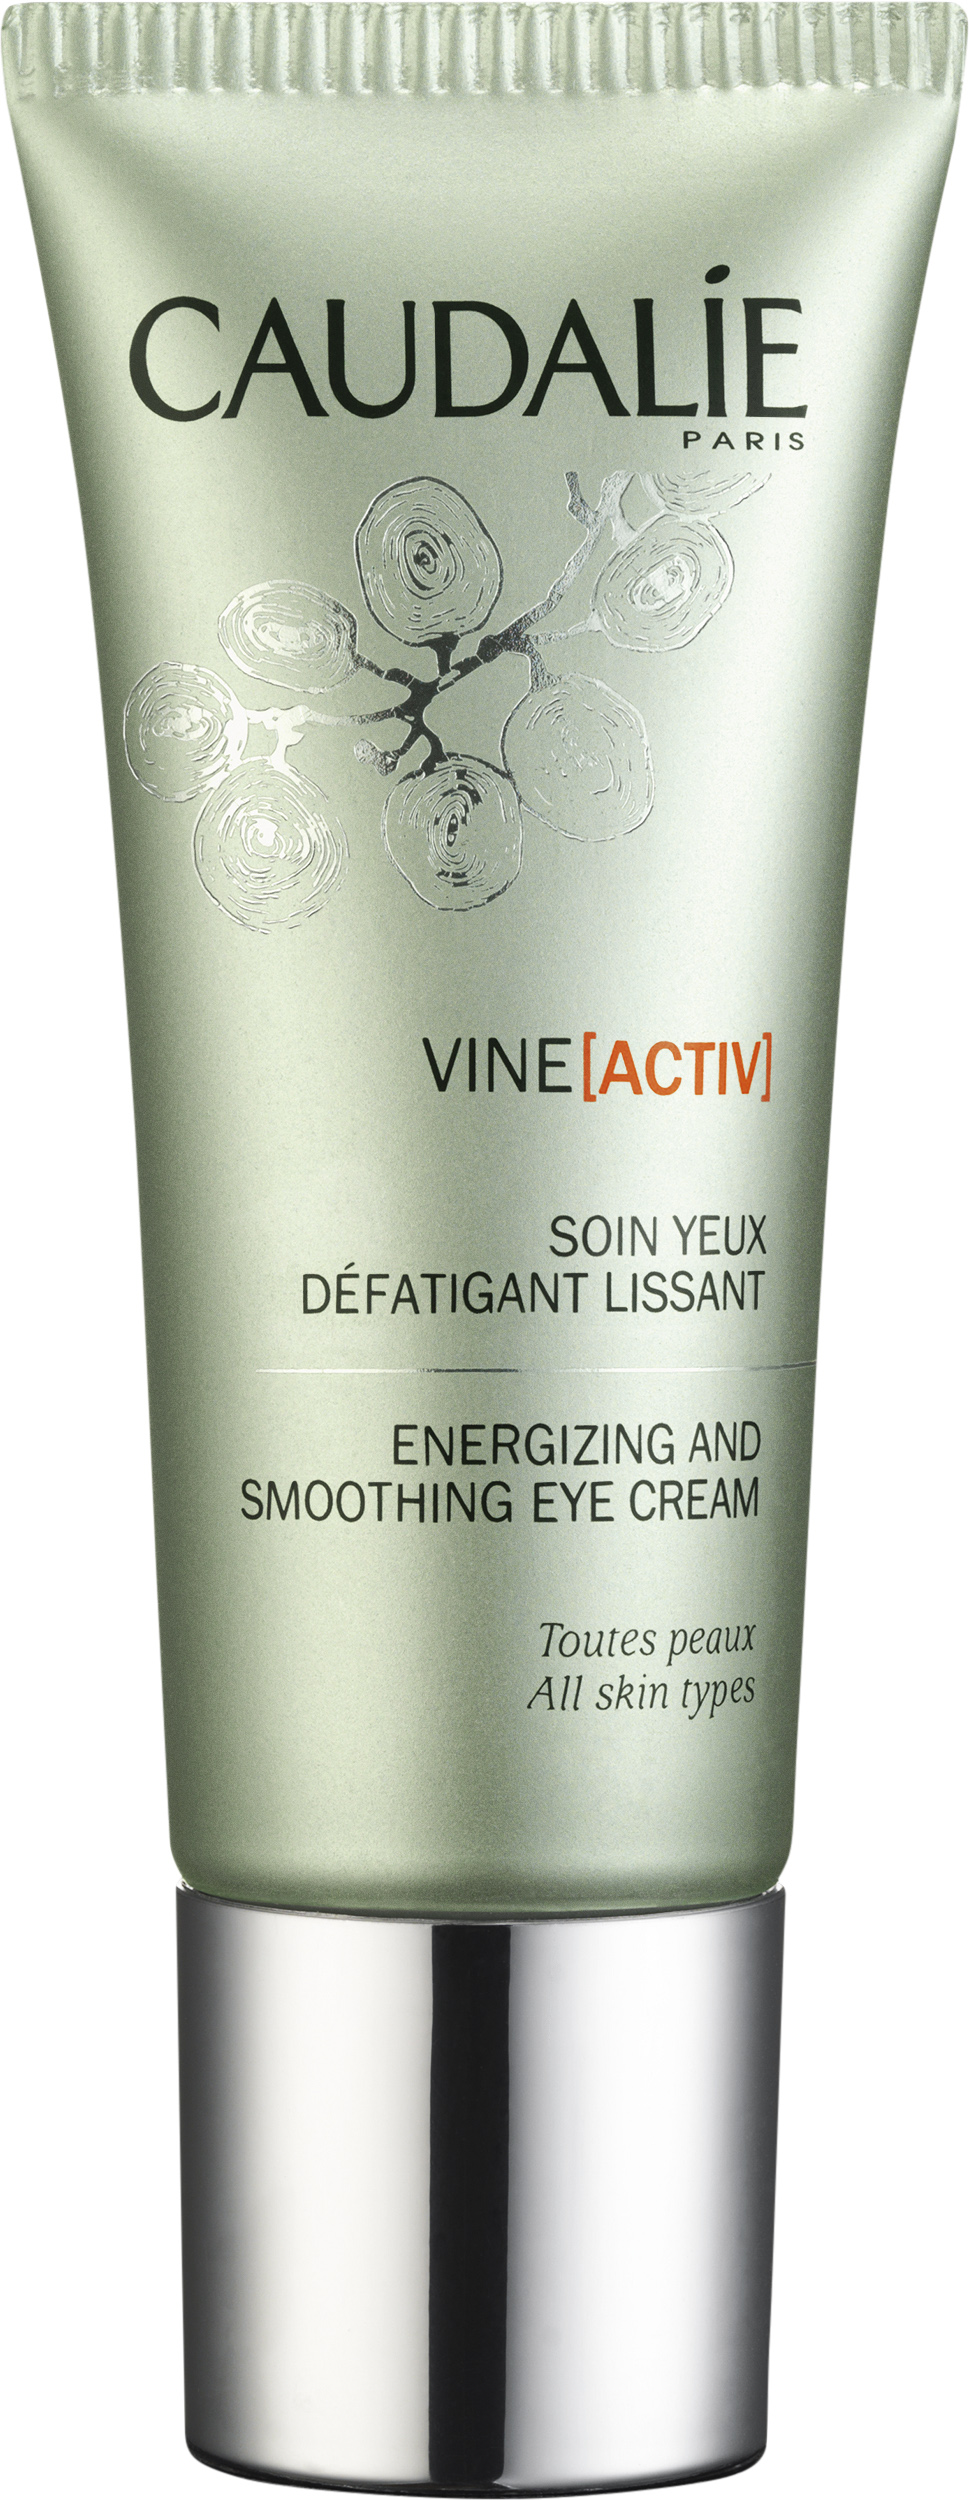 Caudalie - VineActiv Energizing and Smoothing Eye Cream 15 ml